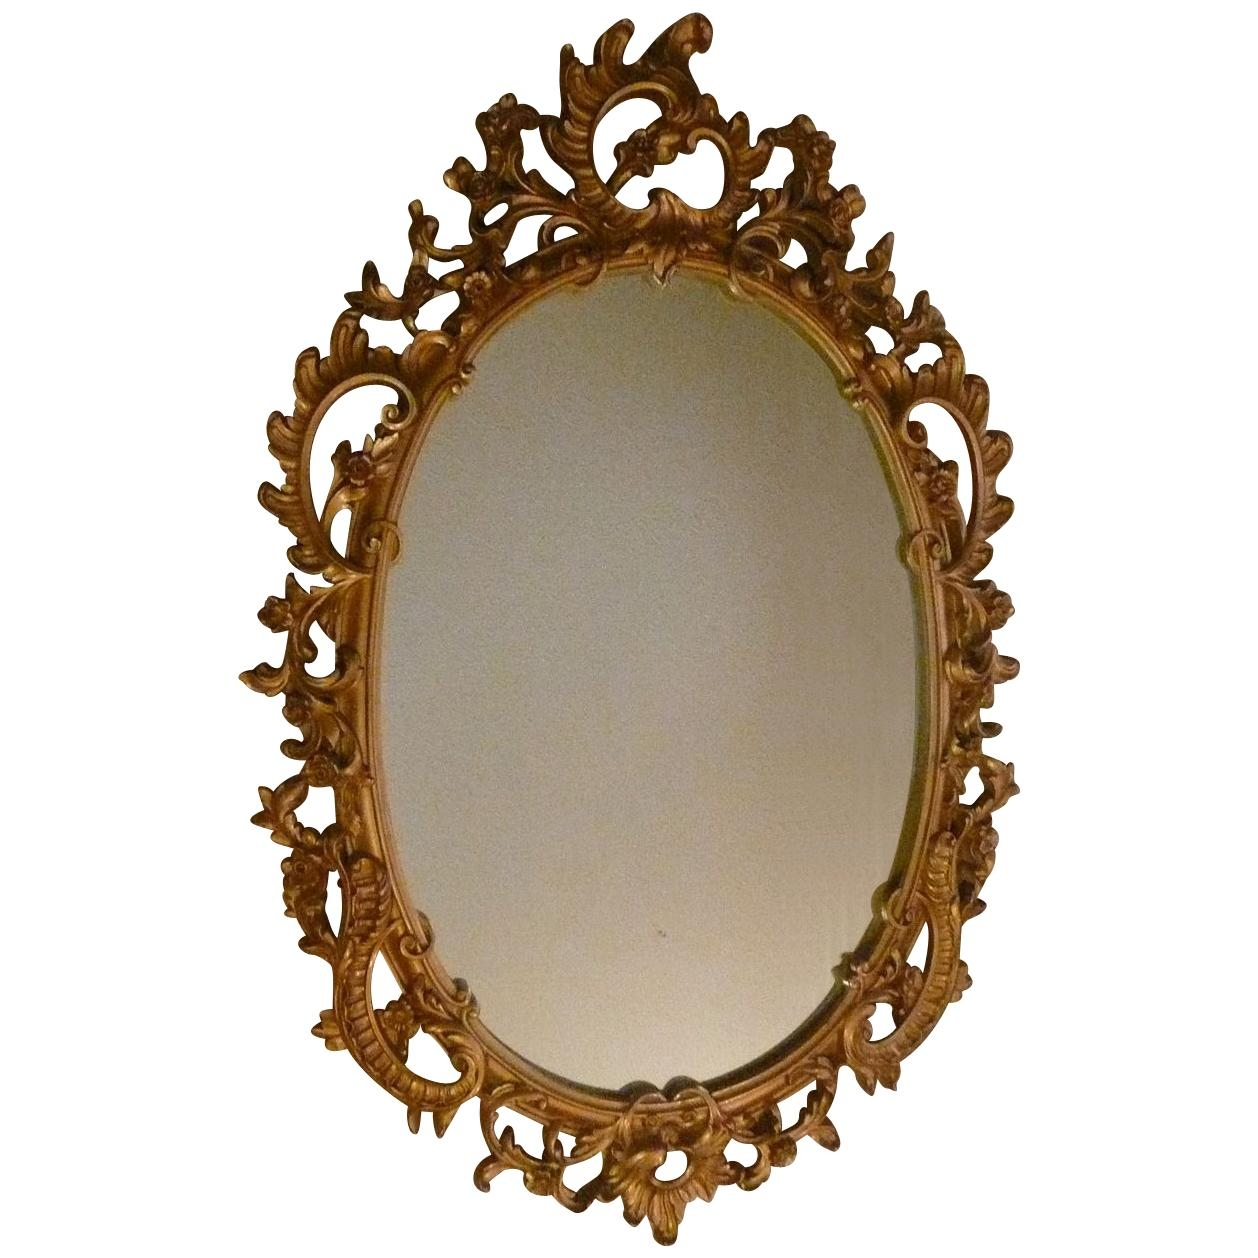 Syroco Wood Composite Mirror With Ornate Scroll From Artgate On Inside Mirrors Ornate (Image 18 of 20)